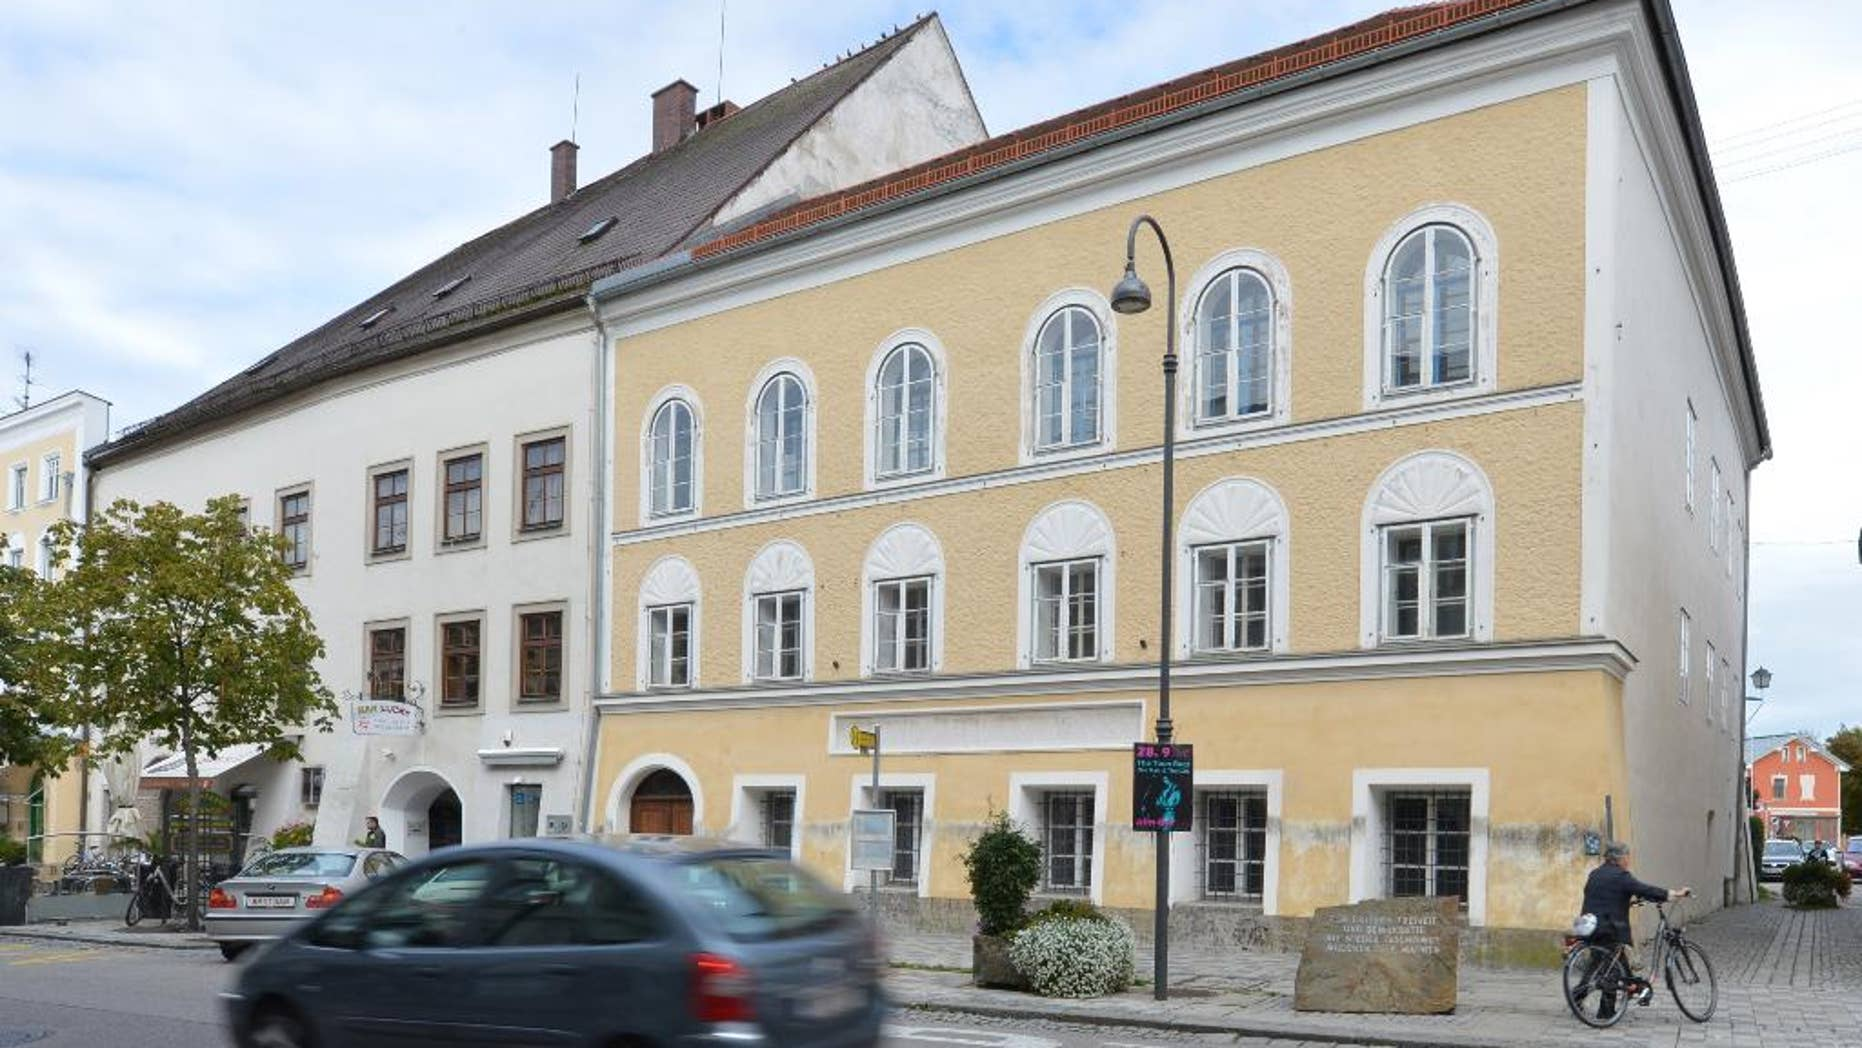 "FILE - This Sept. 27, 2012 file picture  shows an exterior view of Adolf Hitler's birth house , front, in Braunau am Inn, Austria. Austria's interior minister says Saturday  June 11, 2016 he can imagine having the house where Adolf Hitler was born demolished, calling it ""the cleanest solution.""  The Austrian government wants to expropriate the house in Braunau am Inn where the future Nazi leader was born in 1889 to keep it from falling into the wrong hands.  (AP Photo / Kerstin Joensson)"